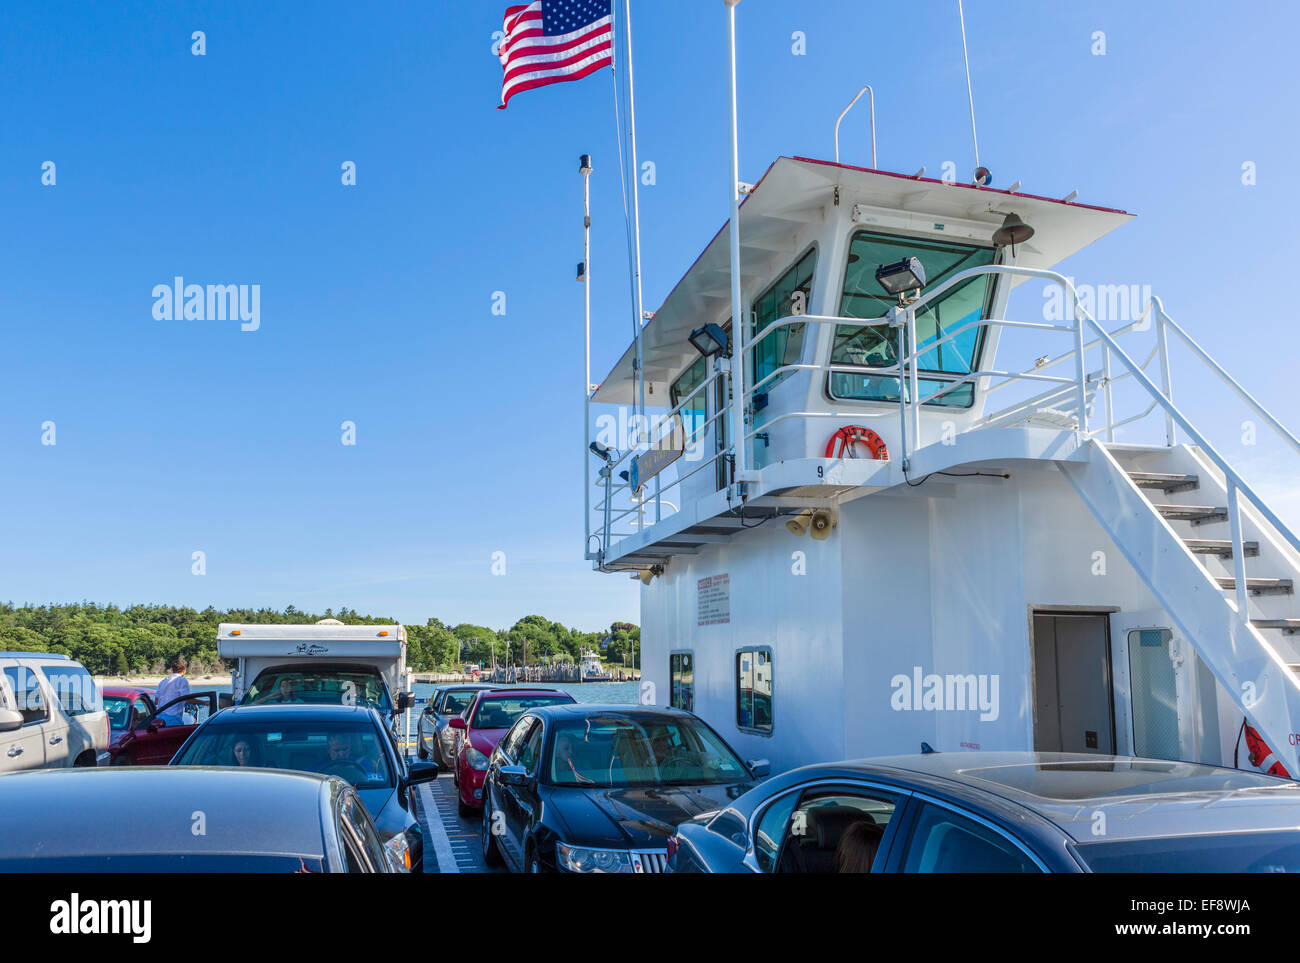 South Ferry zwischen der South Fork und Shelter Island, Suffolk County, Long Island, NY, USA Stockbild